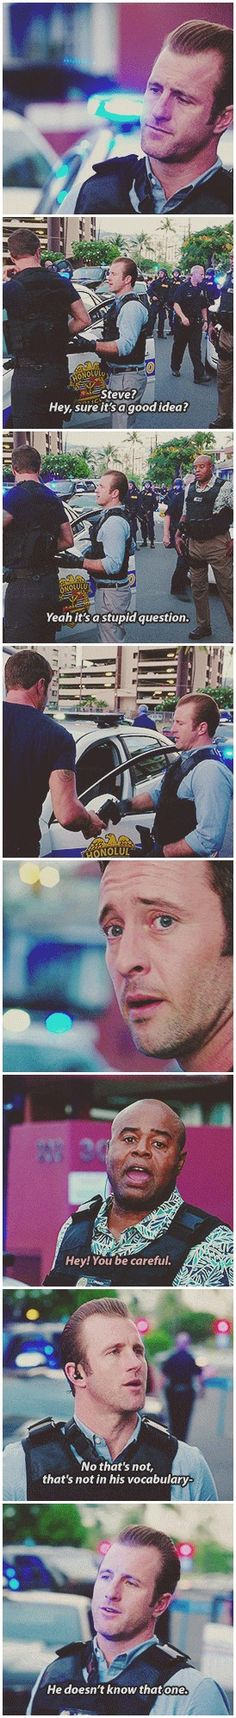 mcdanno hawaii five 0 danny williams steve mcgarrett lou grover 5.15 +unnecessary touching